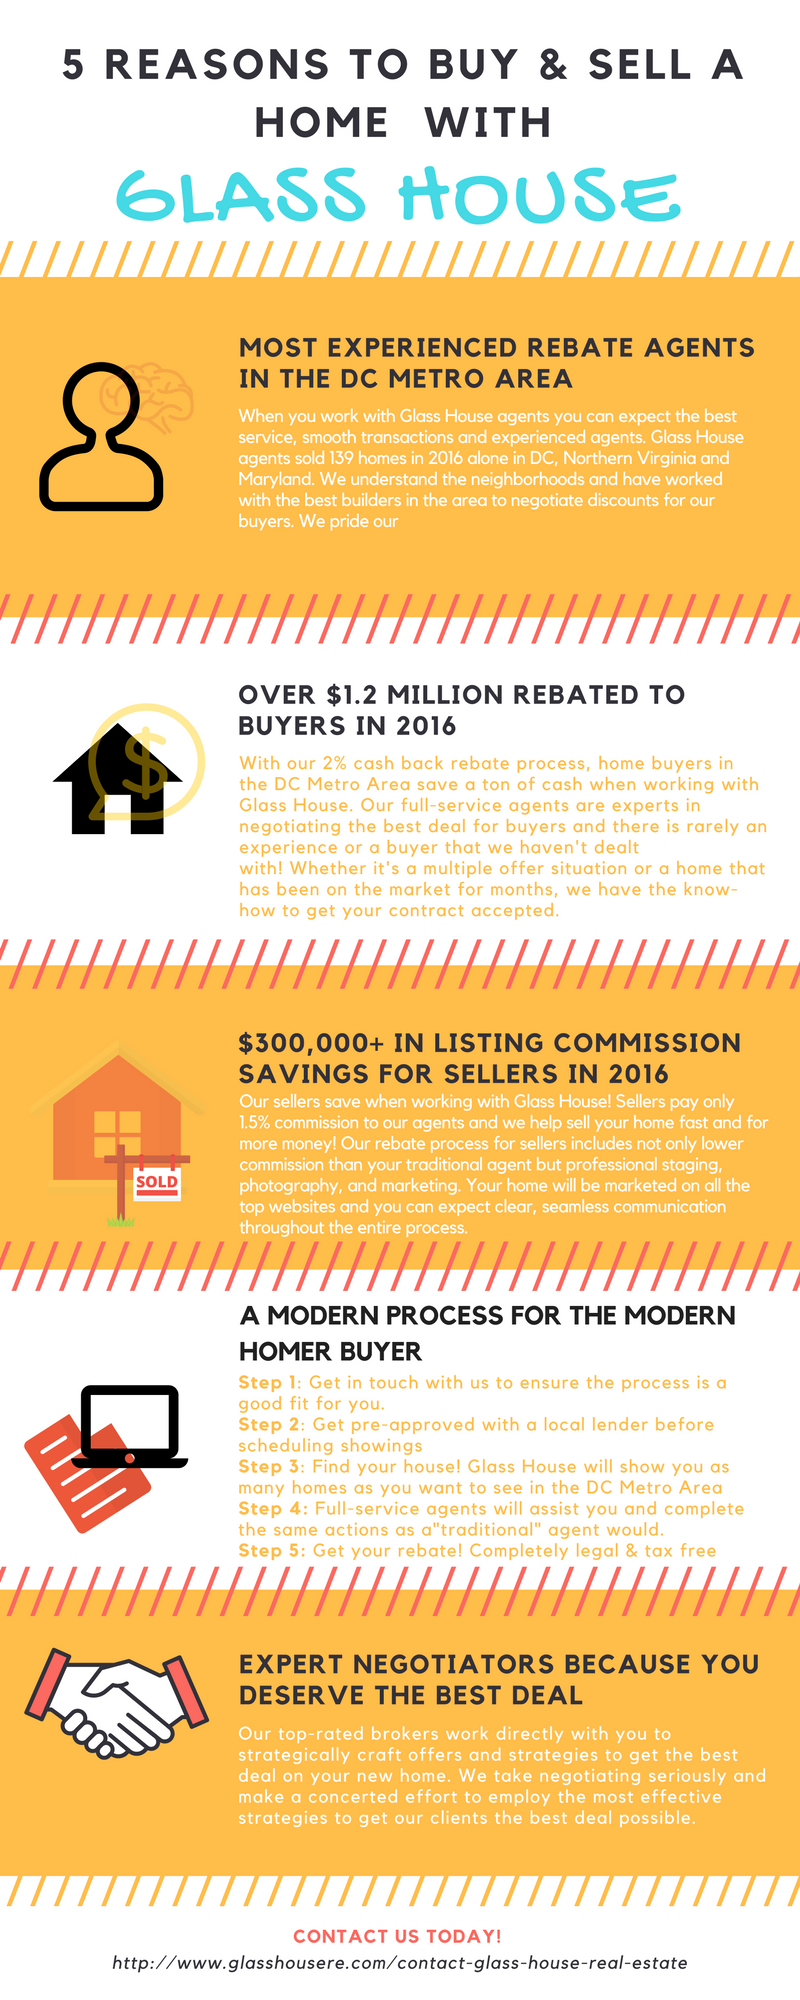 5 Reasons to Buy & Sell Your Home With Glass House [INFOGRAPHIC]